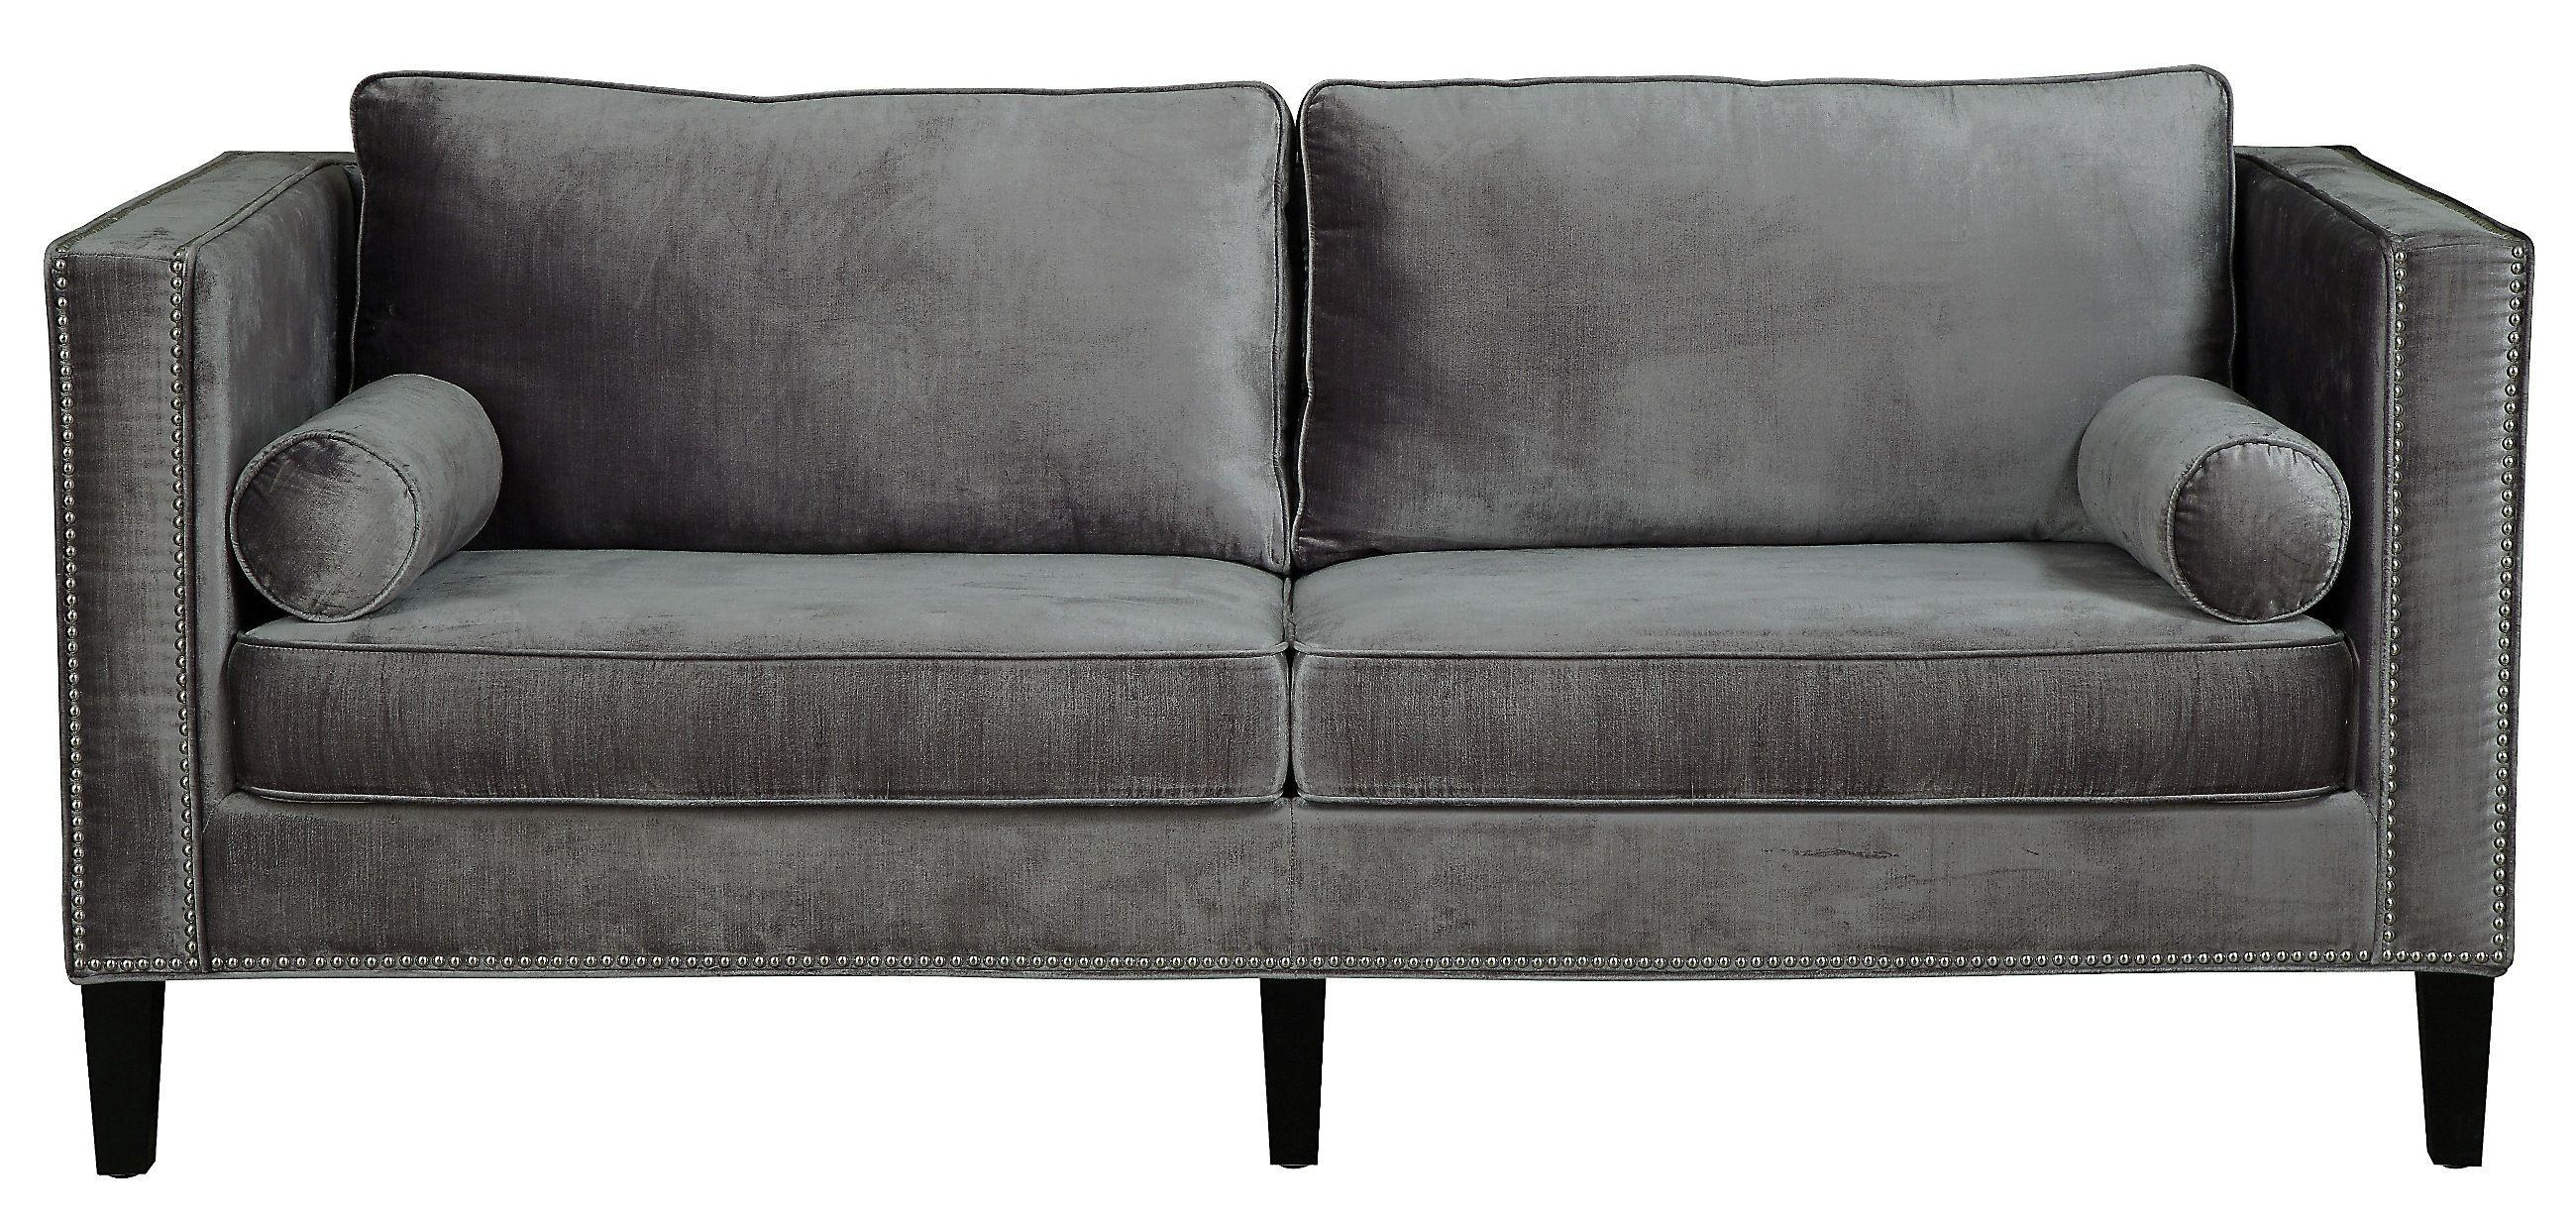 Furniture: Grey Velvet Sofa | Grey Tufted Sofa | Tufted Sleeper Sofa Pertaining To Cheap Tufted Sofas (View 3 of 23)